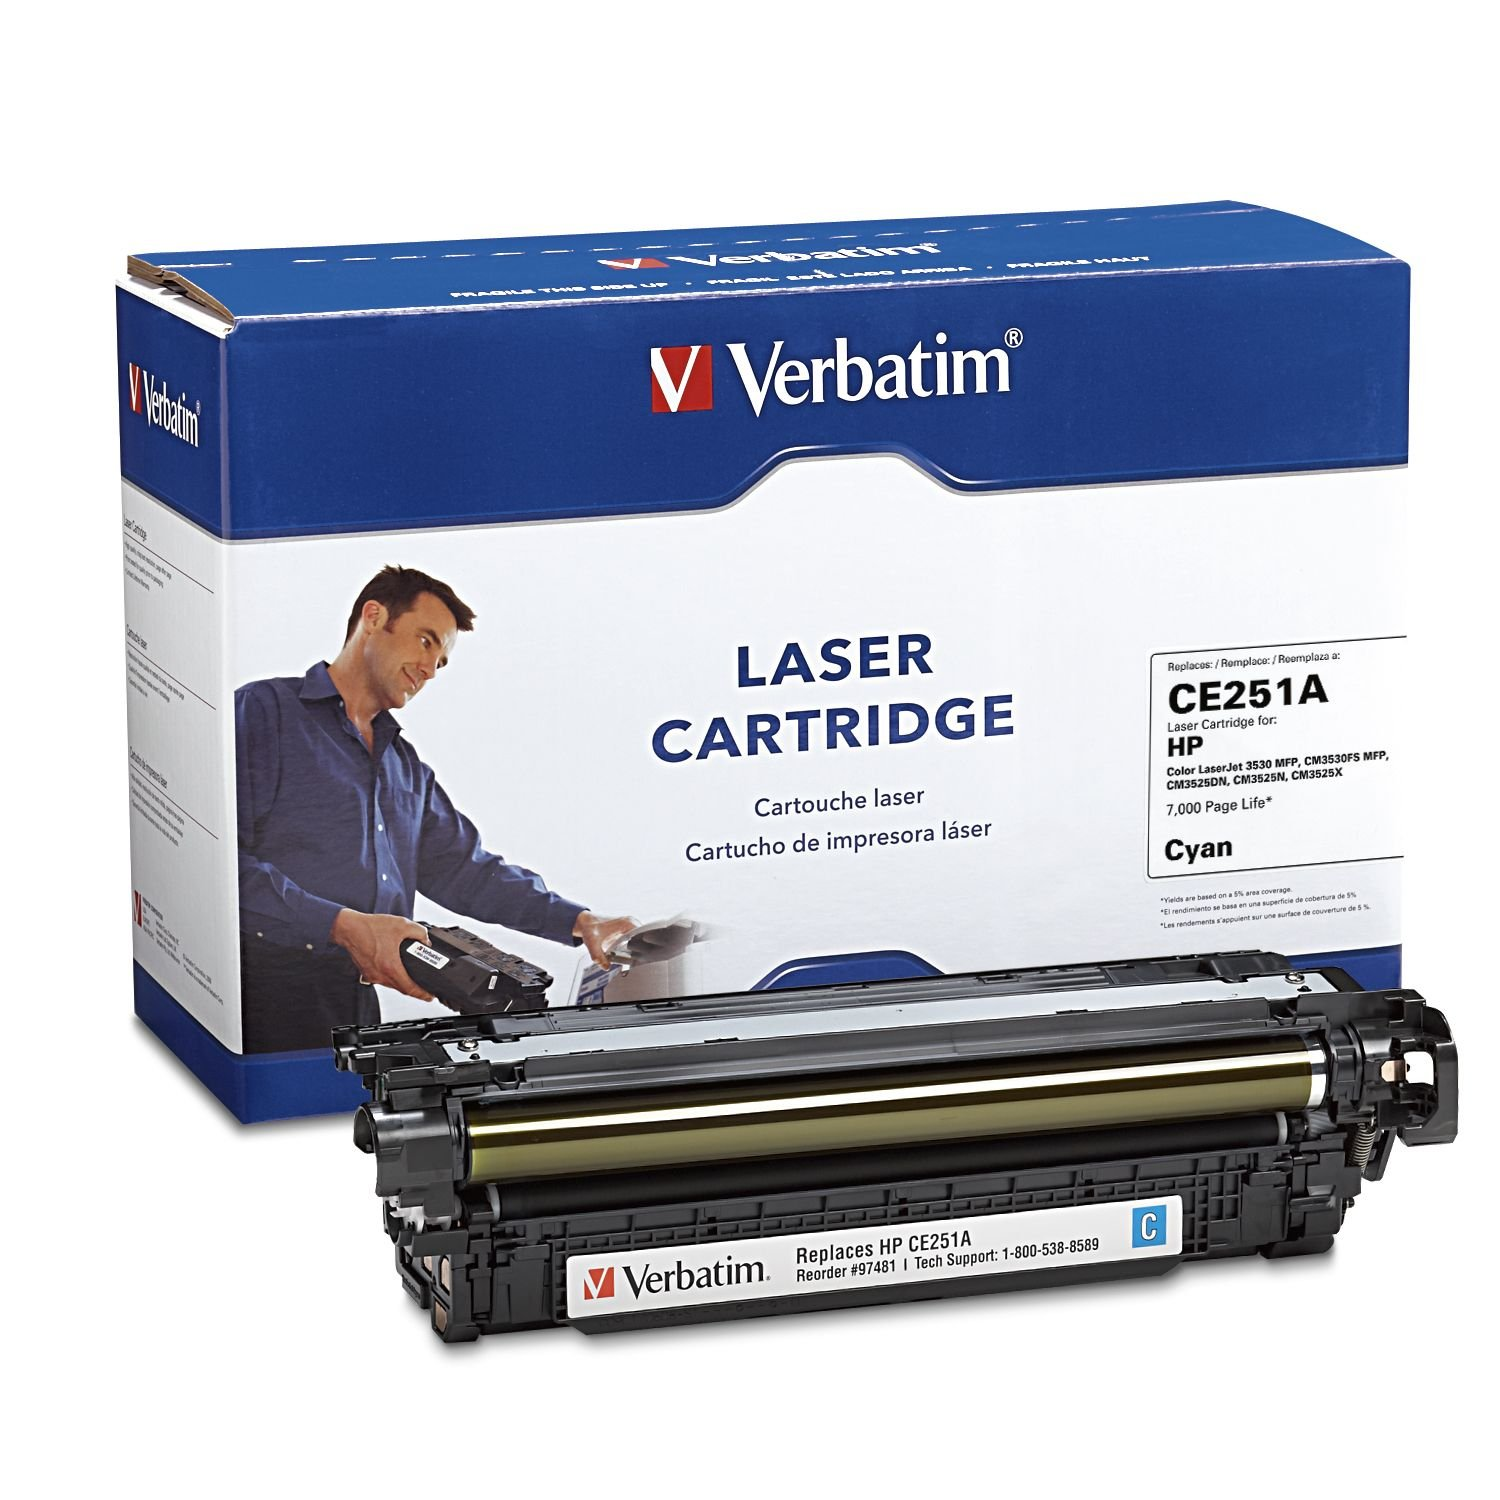 Verbatim Remanufactured Toner Cartridge Replacement for HP CE250A (Black)